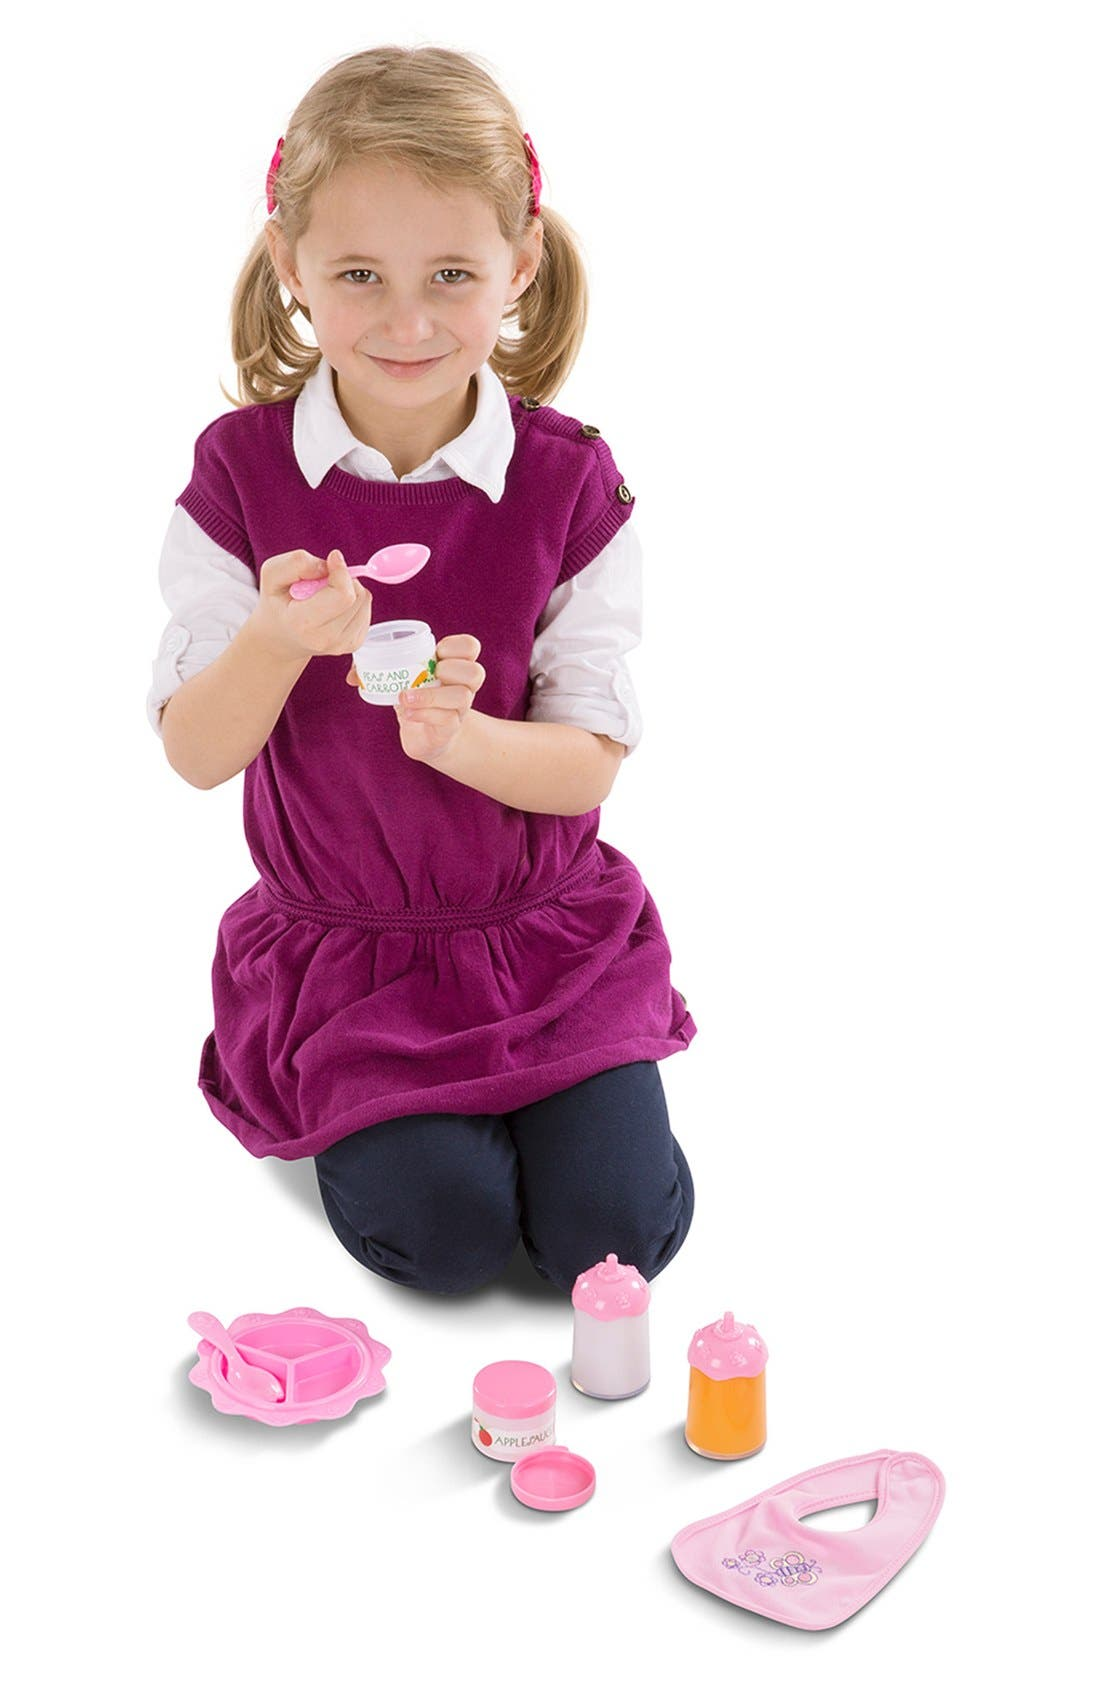 Baby Doll Accessories Set,                             Alternate thumbnail 7, color,                             Pink